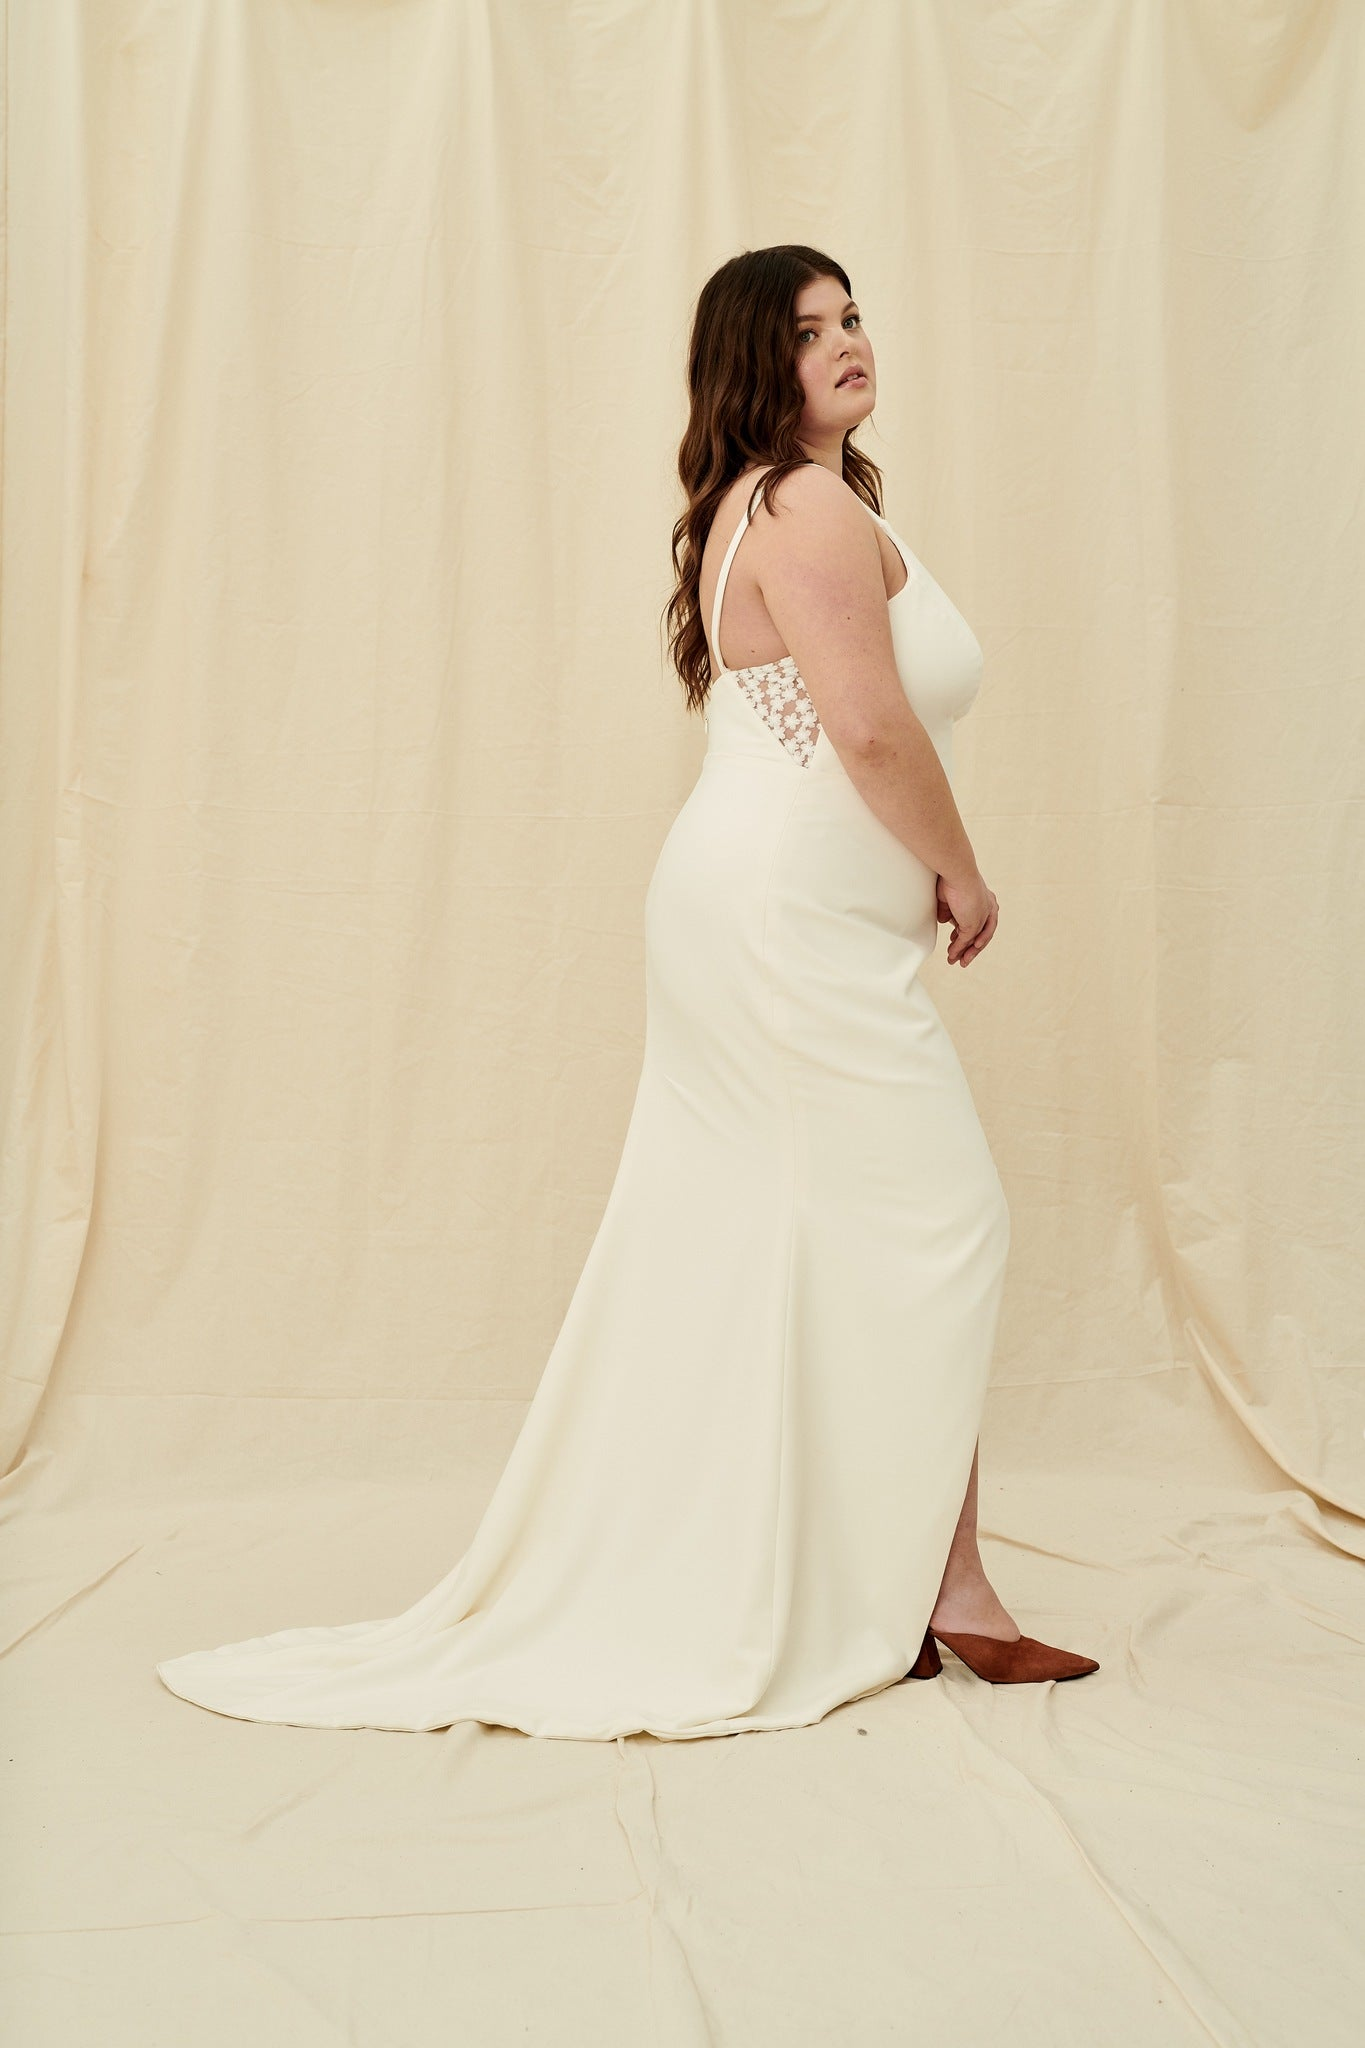 Curvy crepe wedding dress with a high neck, low back, sheer lace panels, and a slit skirt